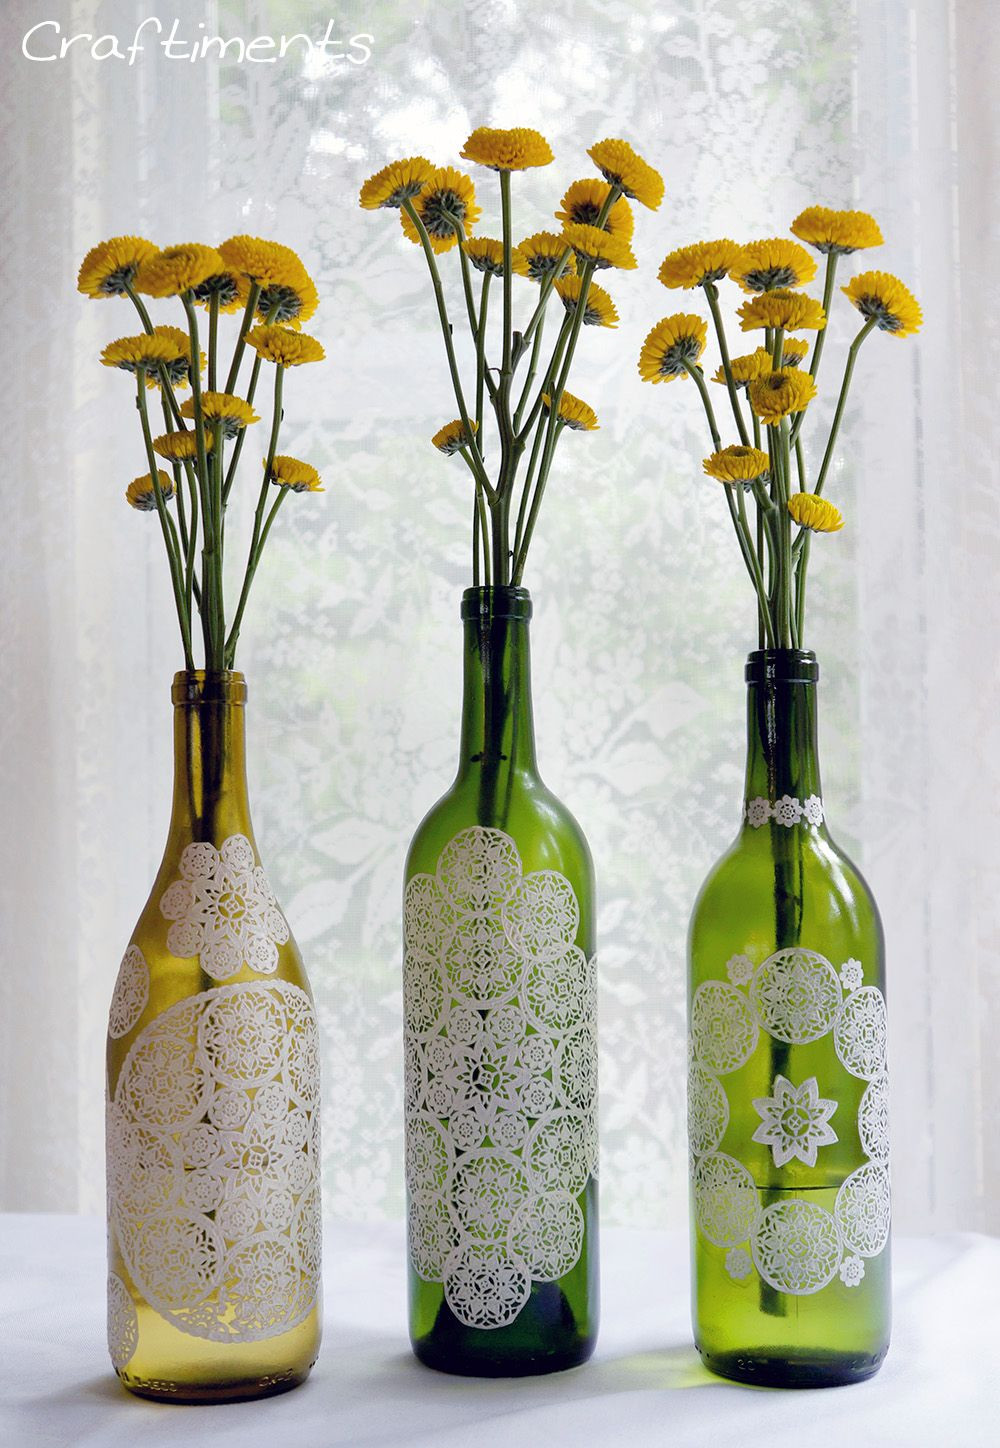 recycled glass bottle vase of inspiring wine bottle crafts shared by creative diy enthusiasts in view in gallery